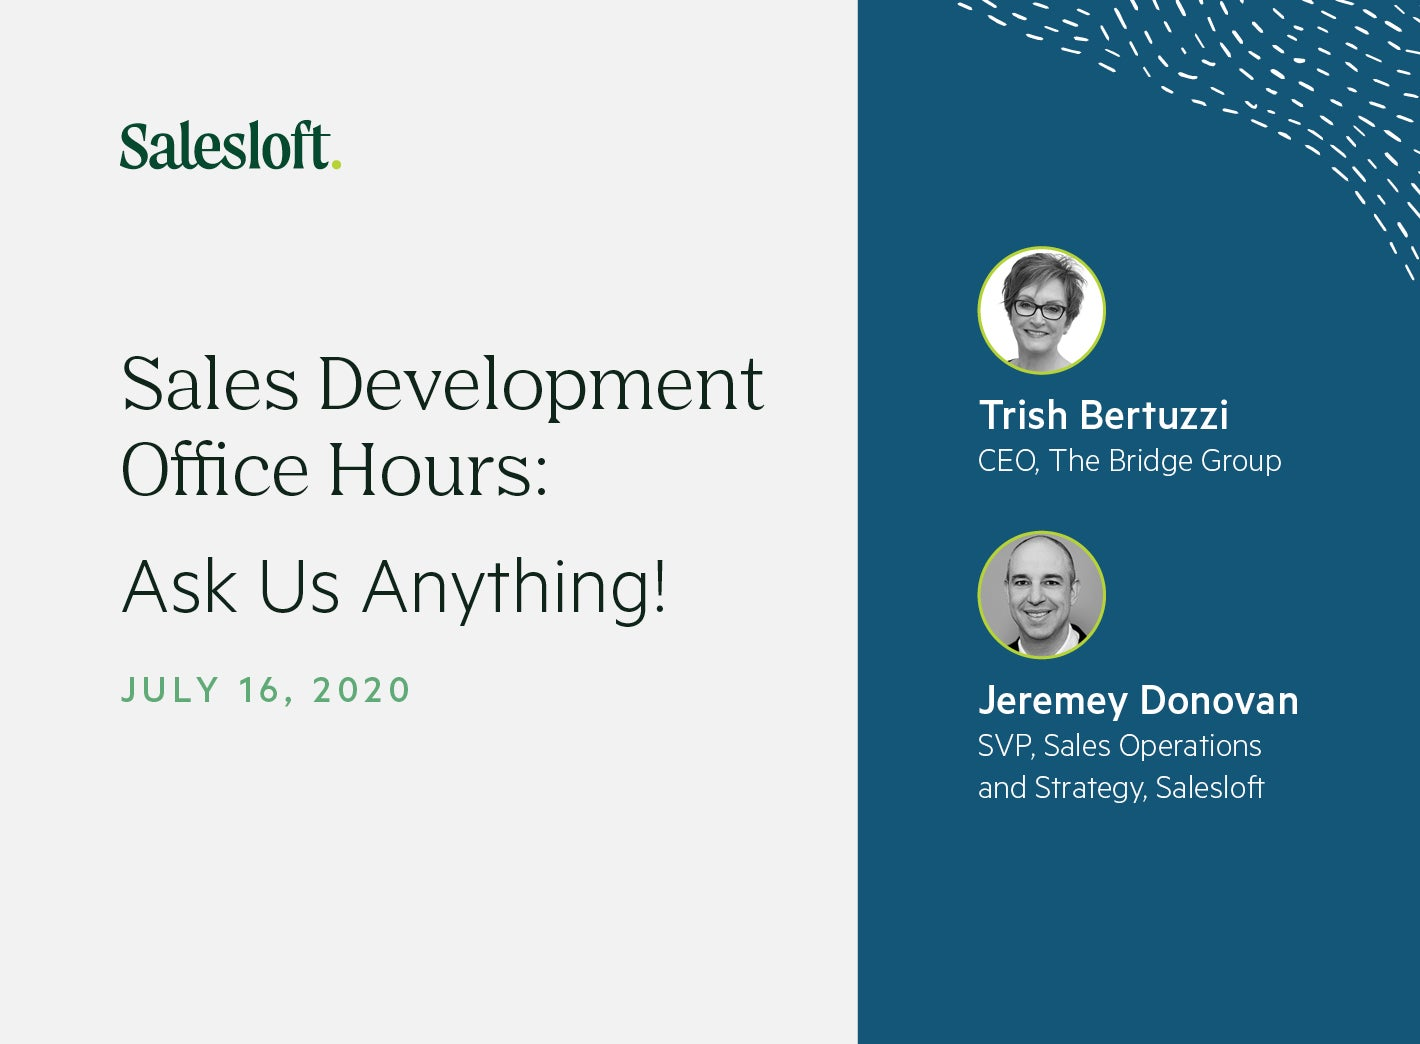 Sales Development Office Hours: Ask Us Anything